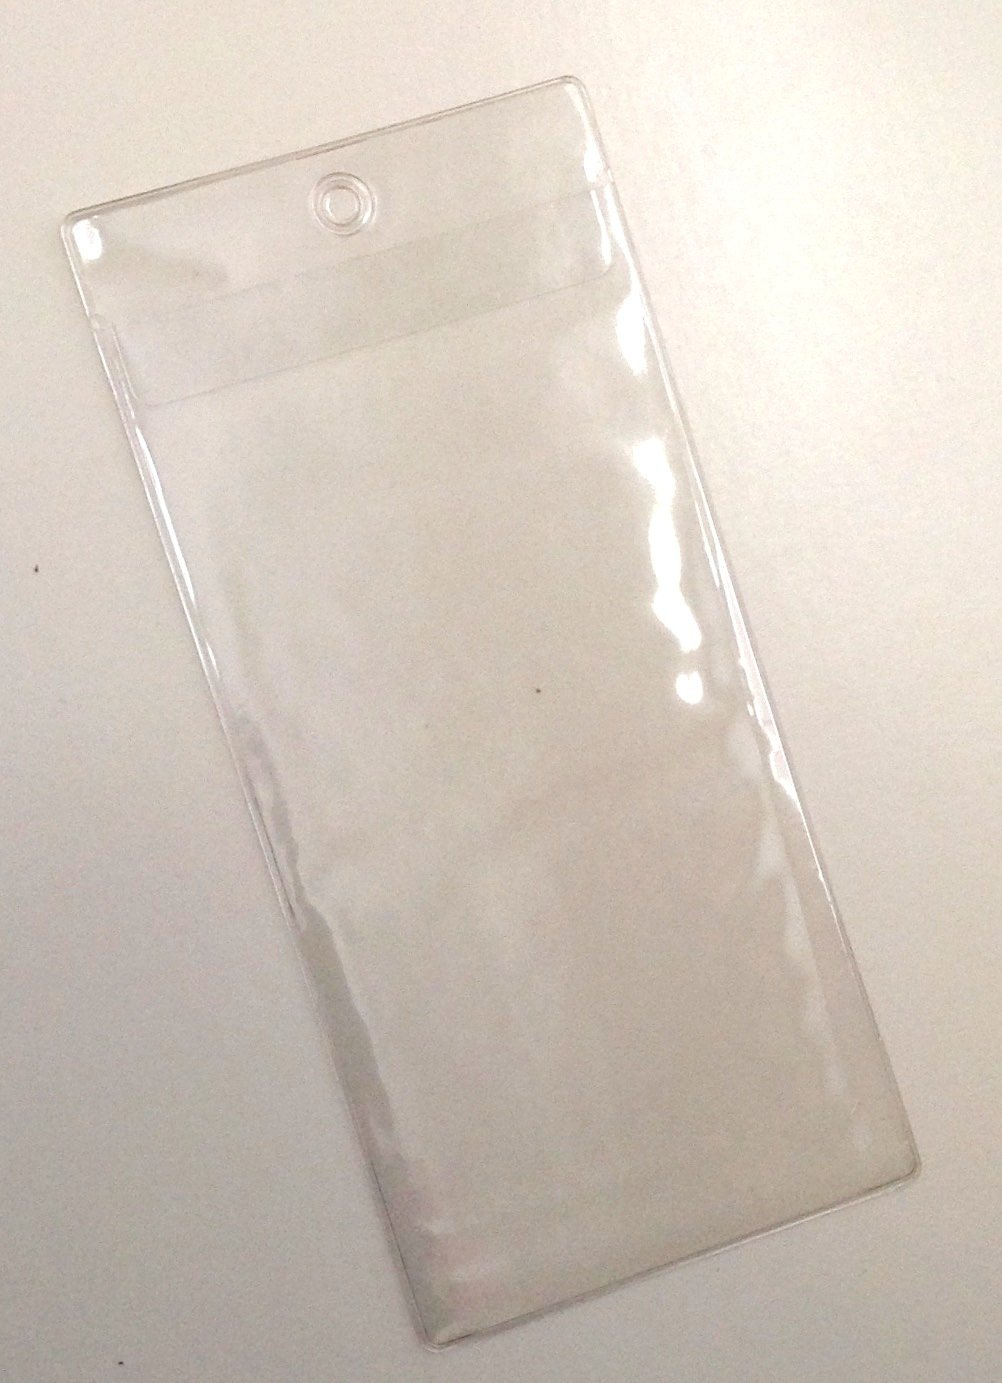 3 Lanyard Holes 4x8 Tix 5 Extra Large 4 X 8 Clear Plastic Ticket Holder Sleeves